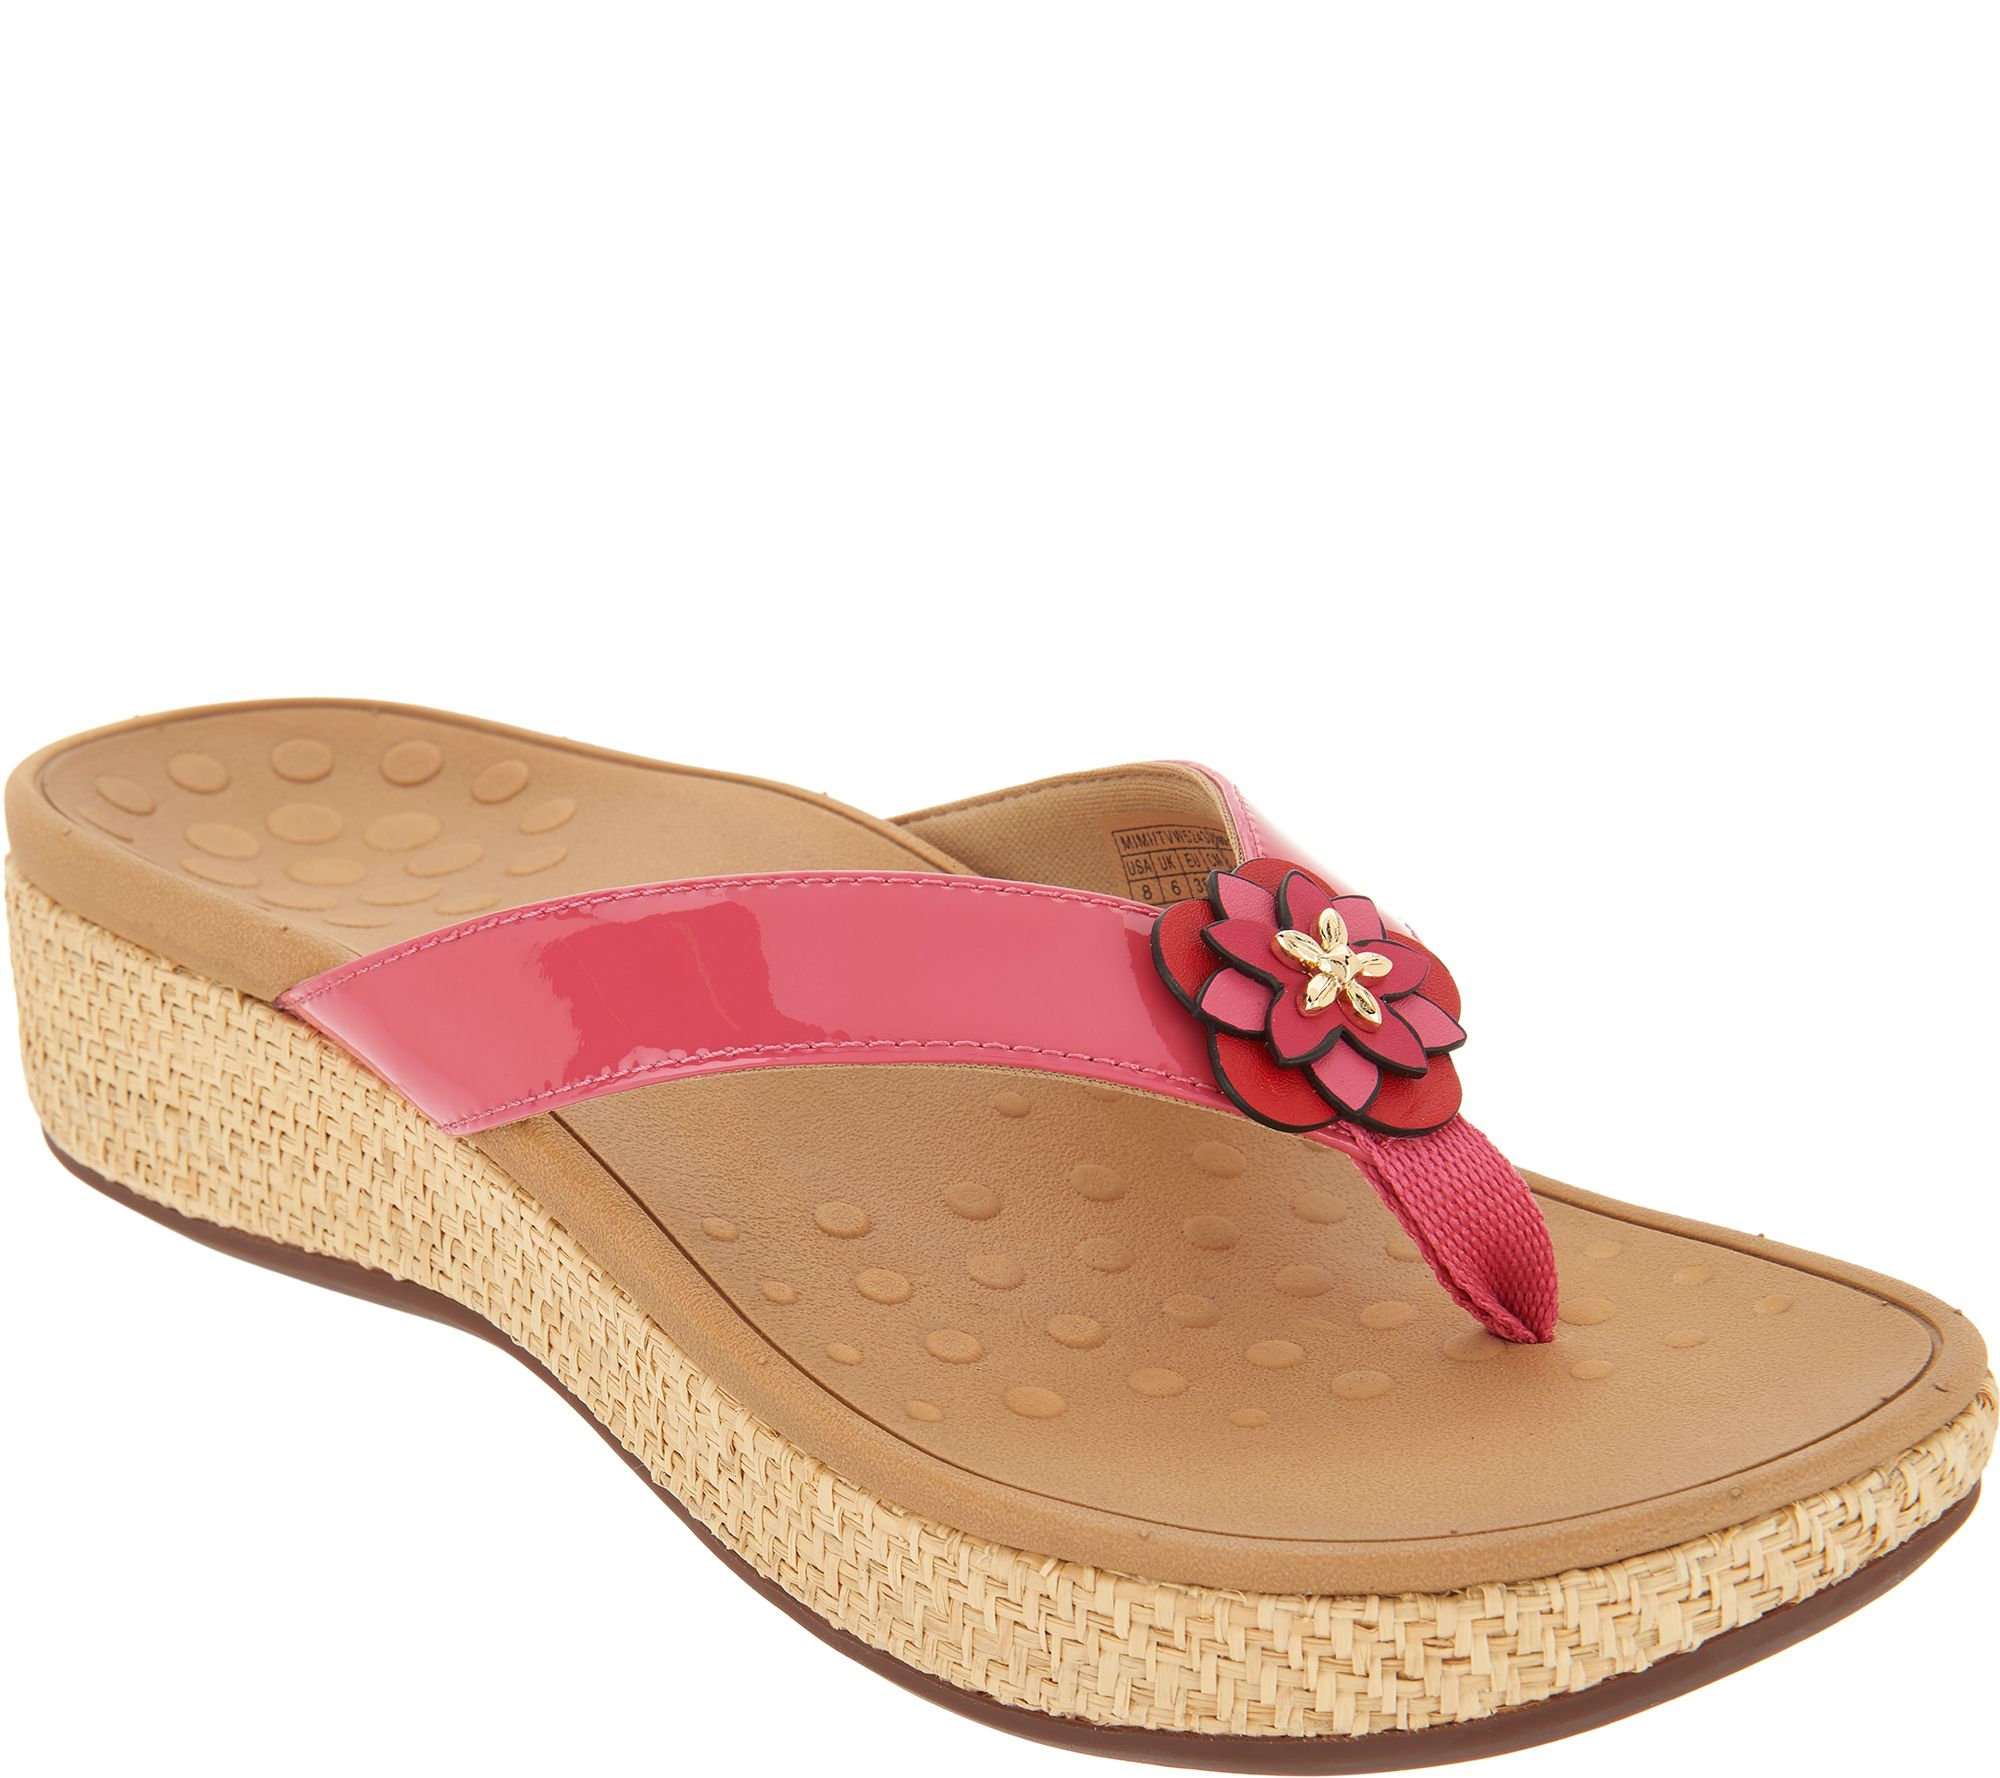 6a629616c249 Vionic Embellished Leather Thong Sandals - Mimi - Page 1 — QVC.com